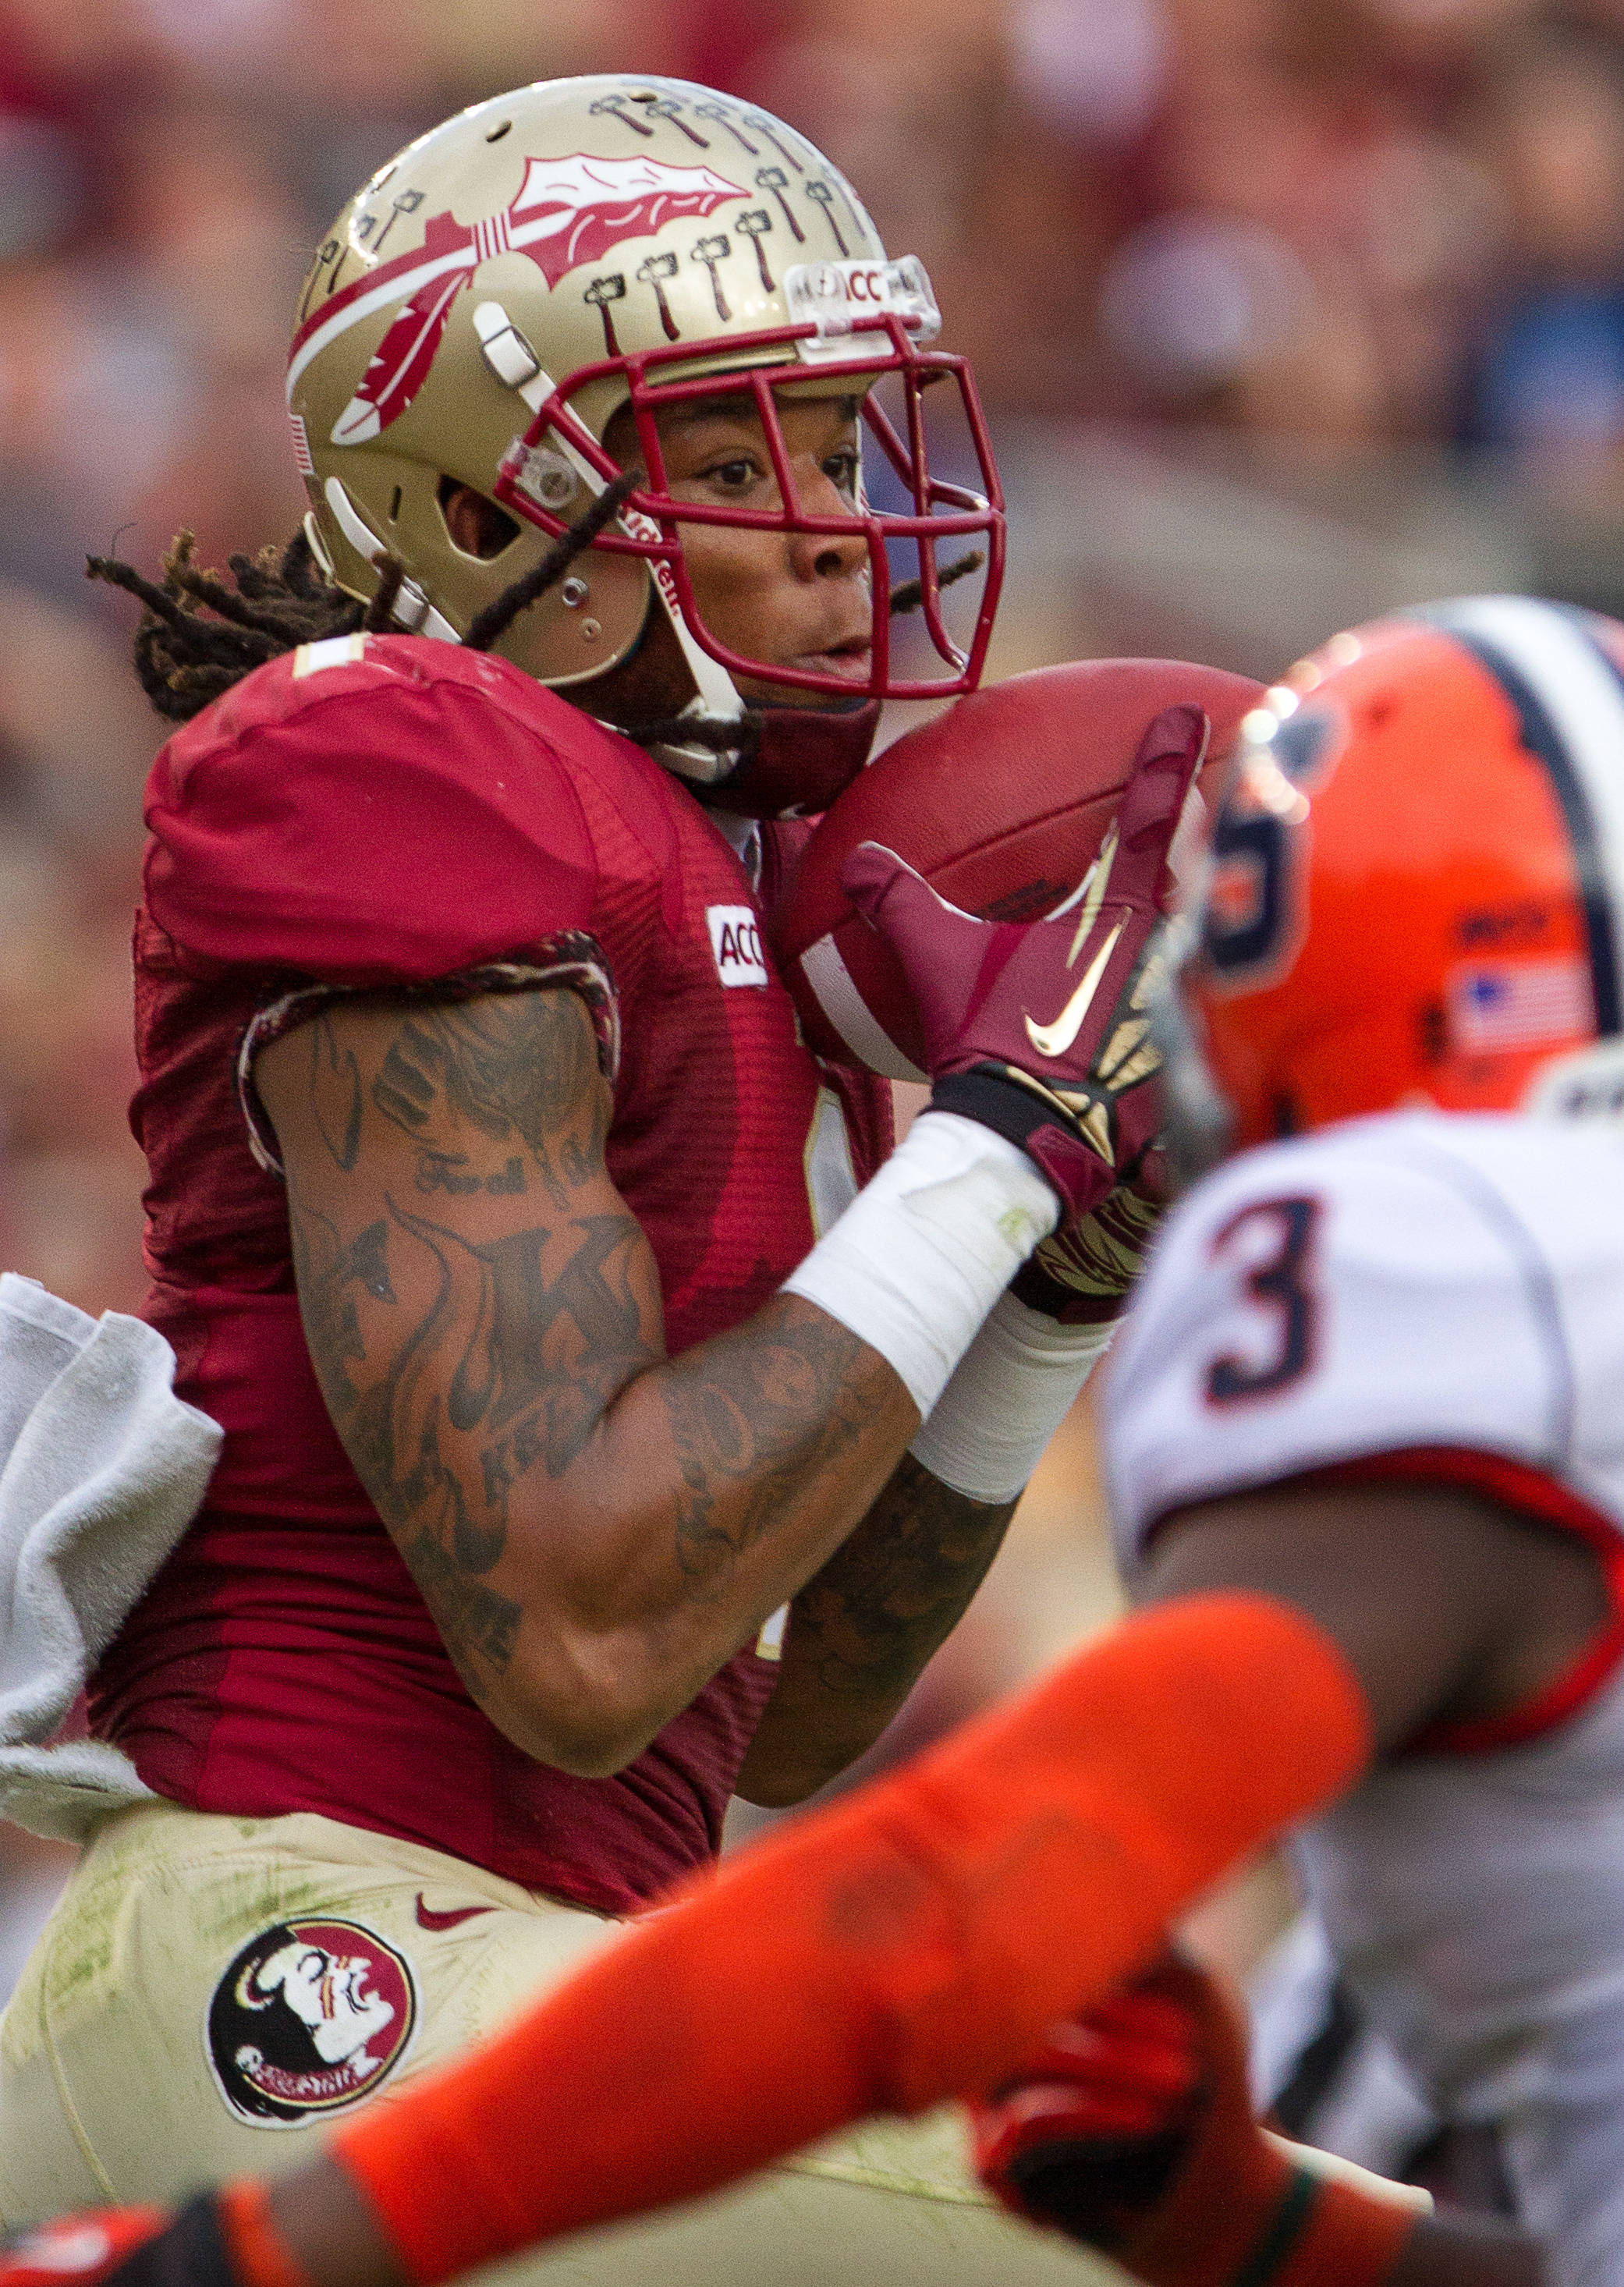 Kelvin Benjamin (1) makes a reception during FSU Football's 59-3 win over Syracuse on Saturday, November 16, 2013 in Tallahassee, Fla. Photo by Mike Schwarz.